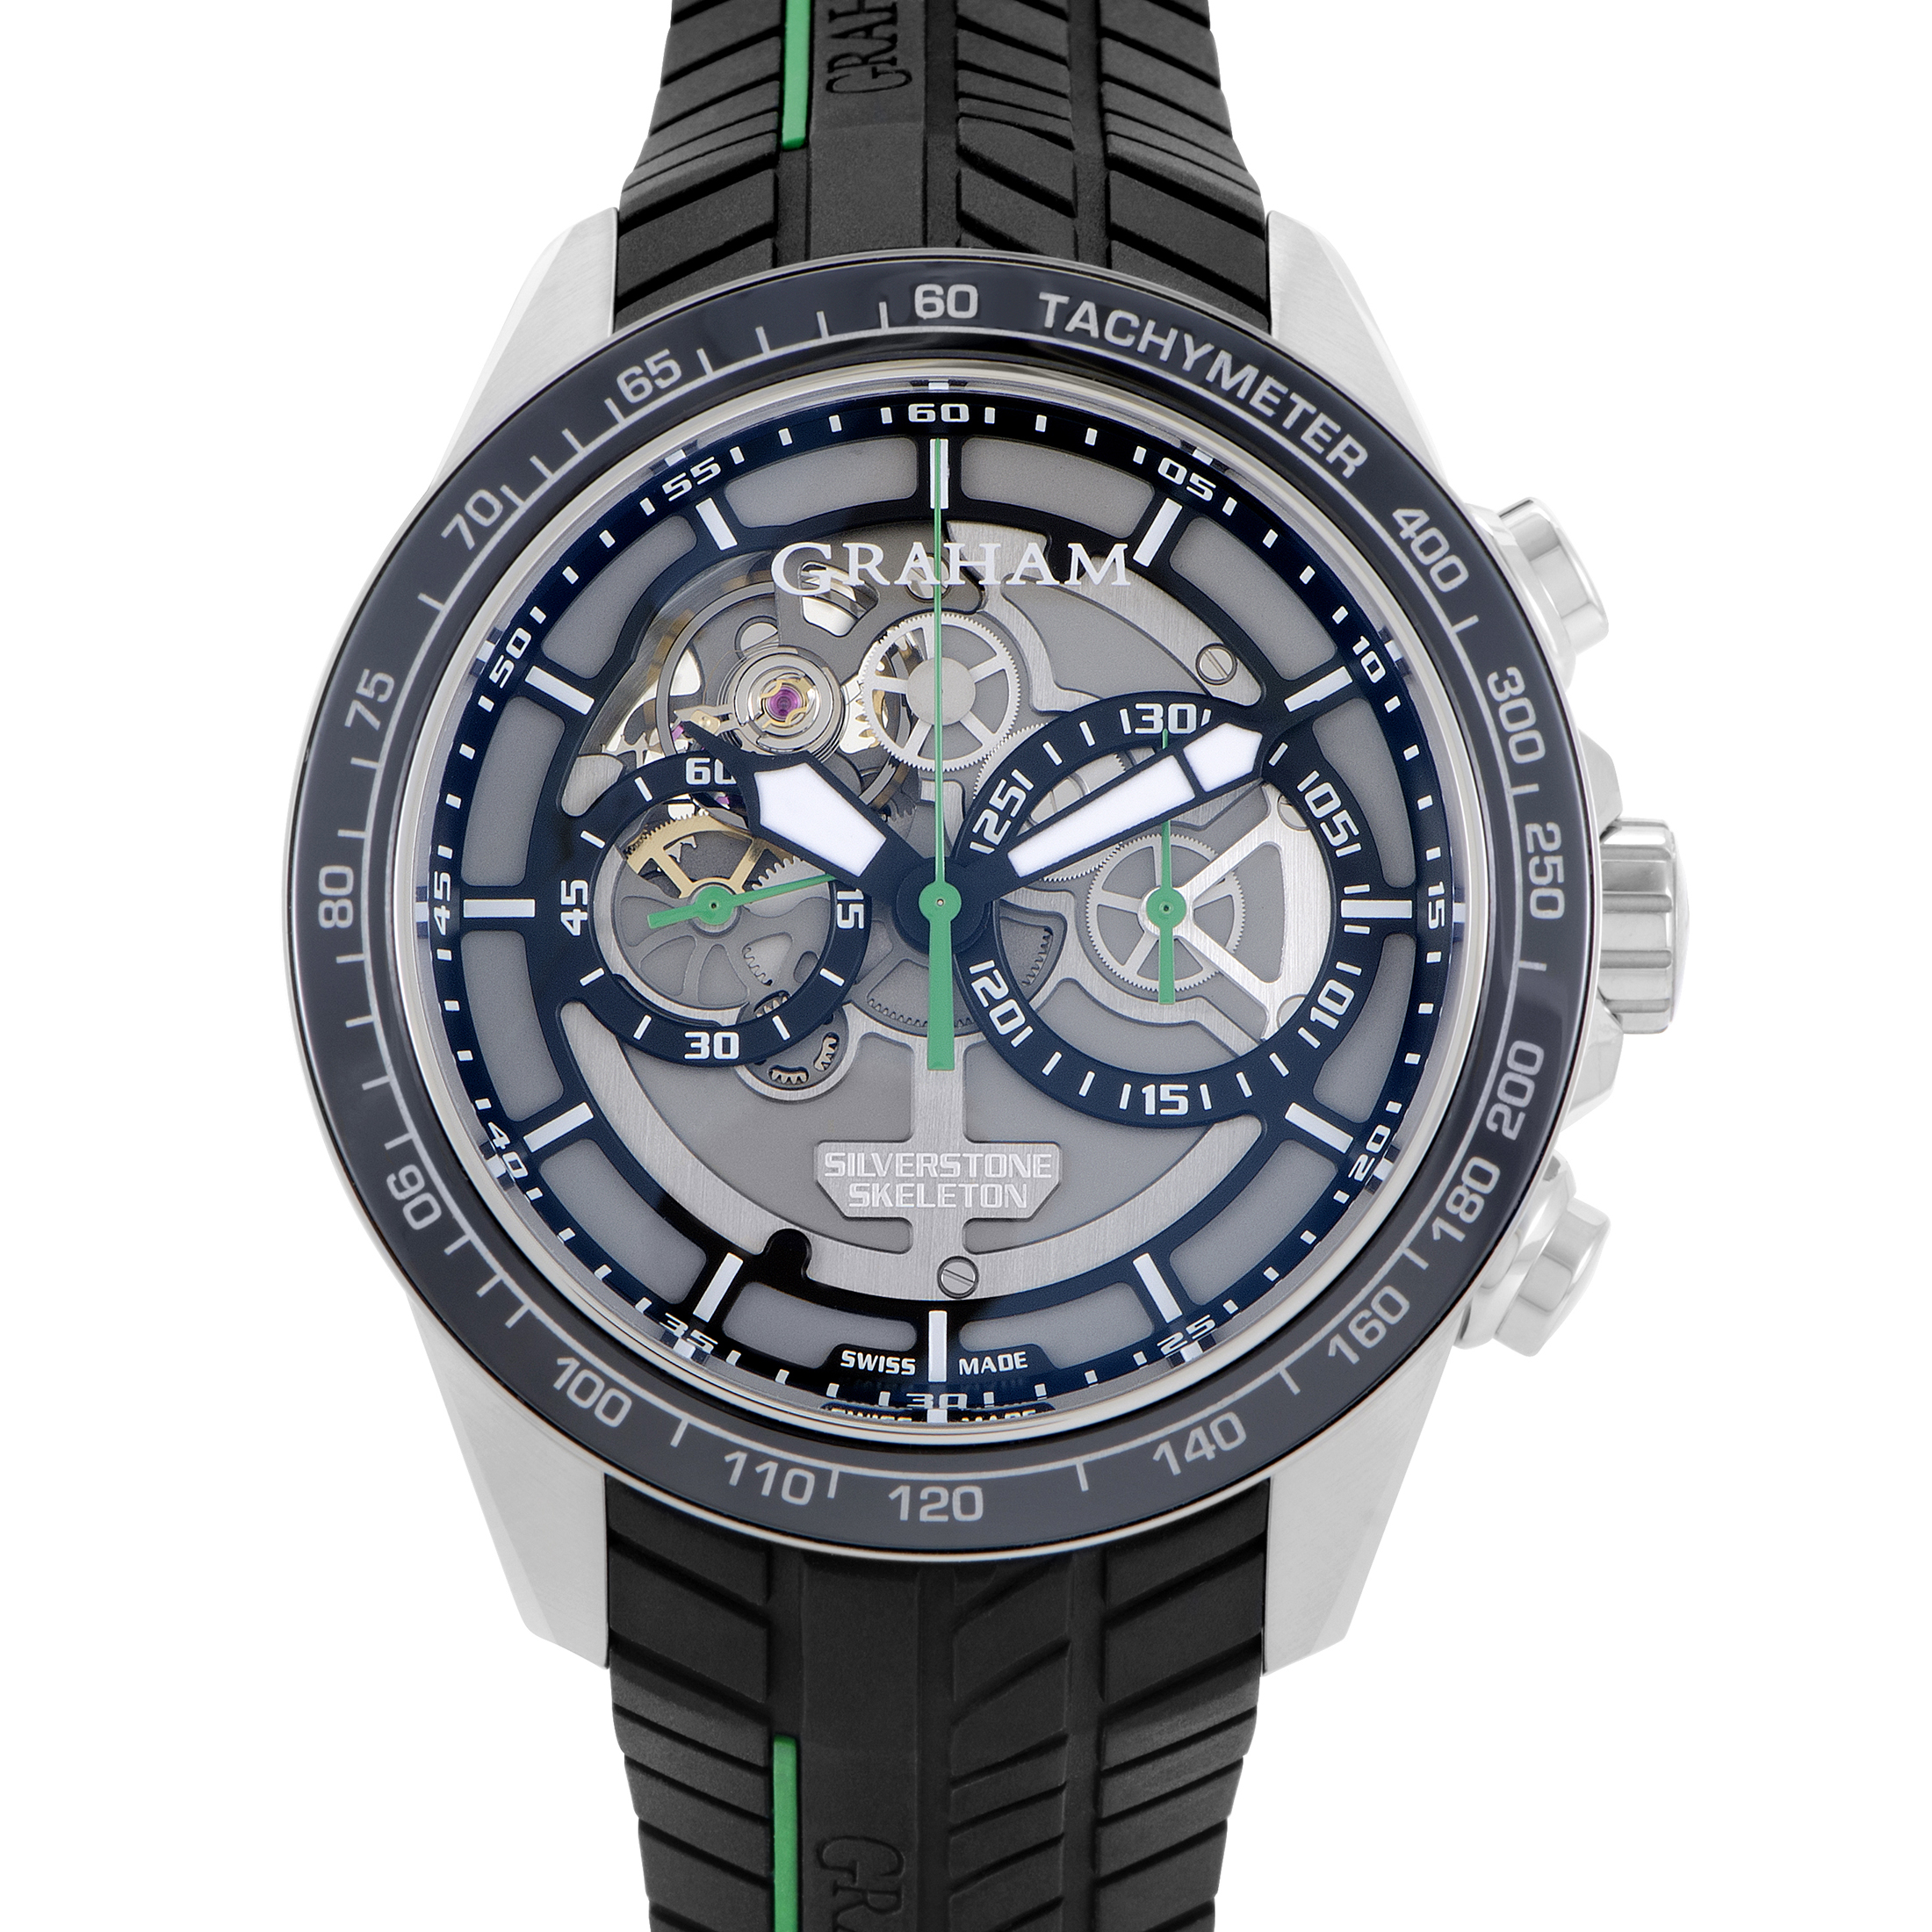 Silverstone RS Skeleton Mens Automatic Chronograph Watch 2STAC2.B01A